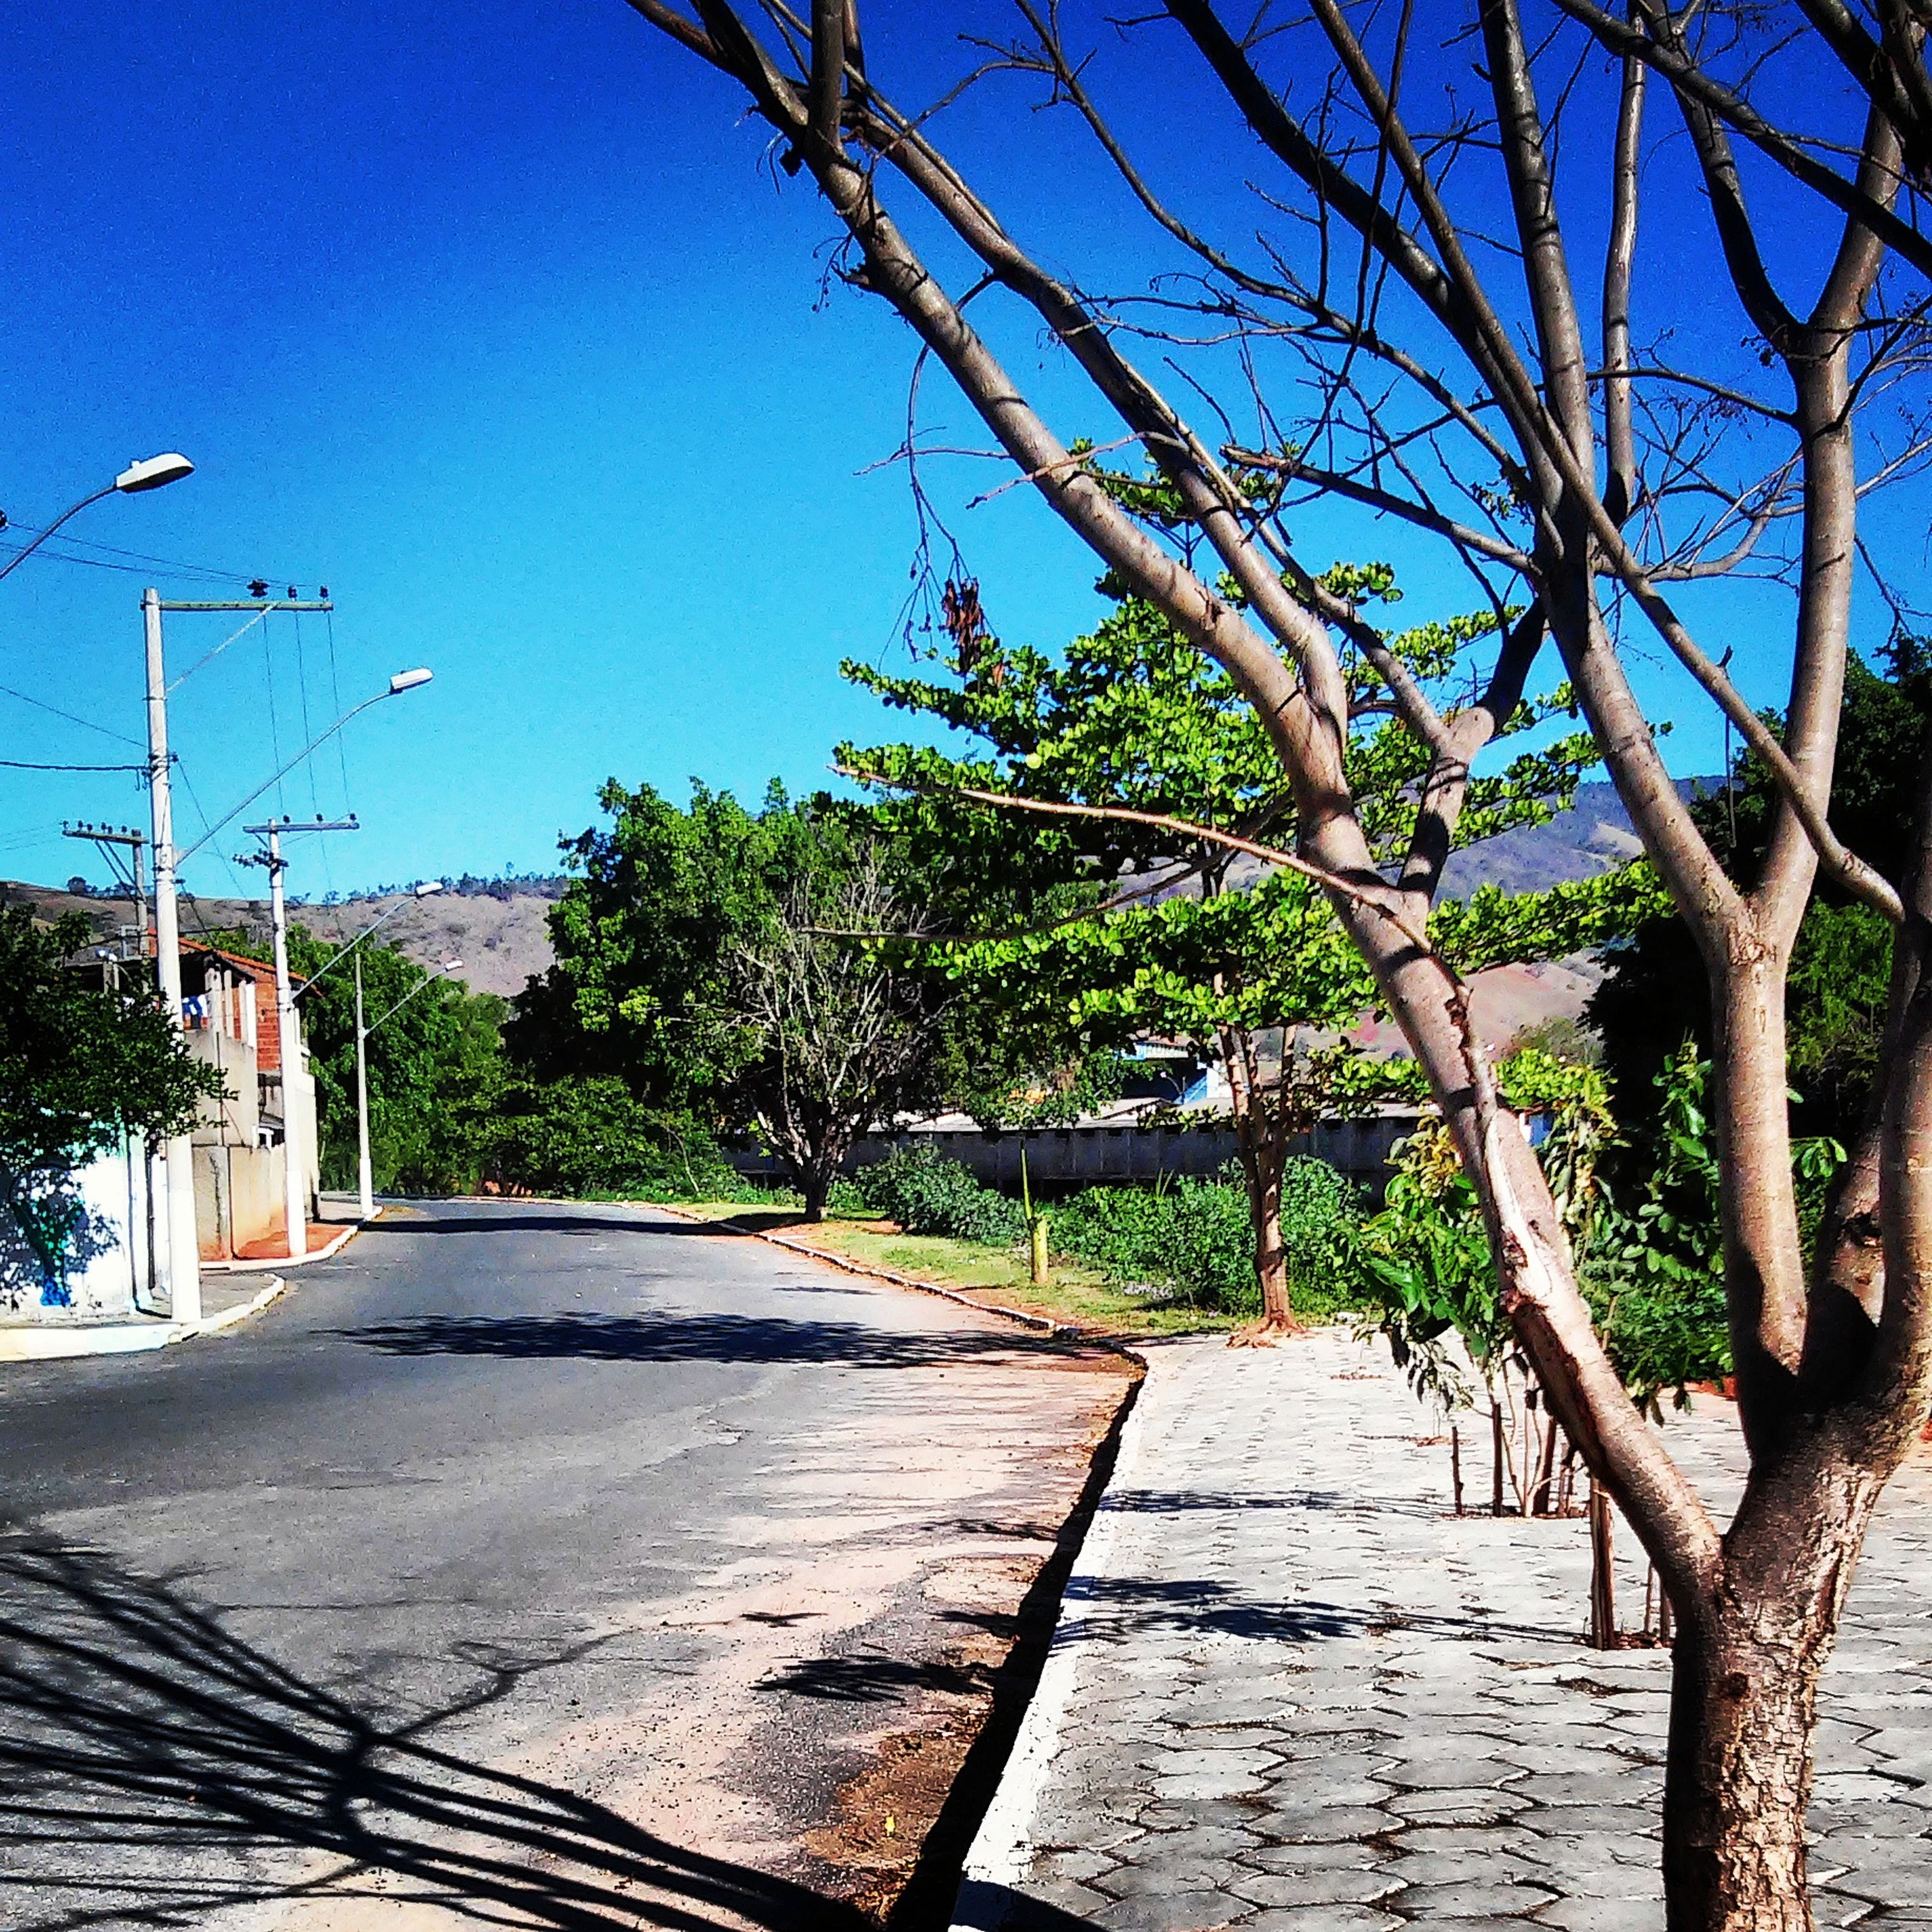 clear sky, blue, tree, built structure, building exterior, the way forward, architecture, sunlight, footpath, shadow, sidewalk, street light, walkway, street, cobblestone, day, outdoors, sky, house, plant